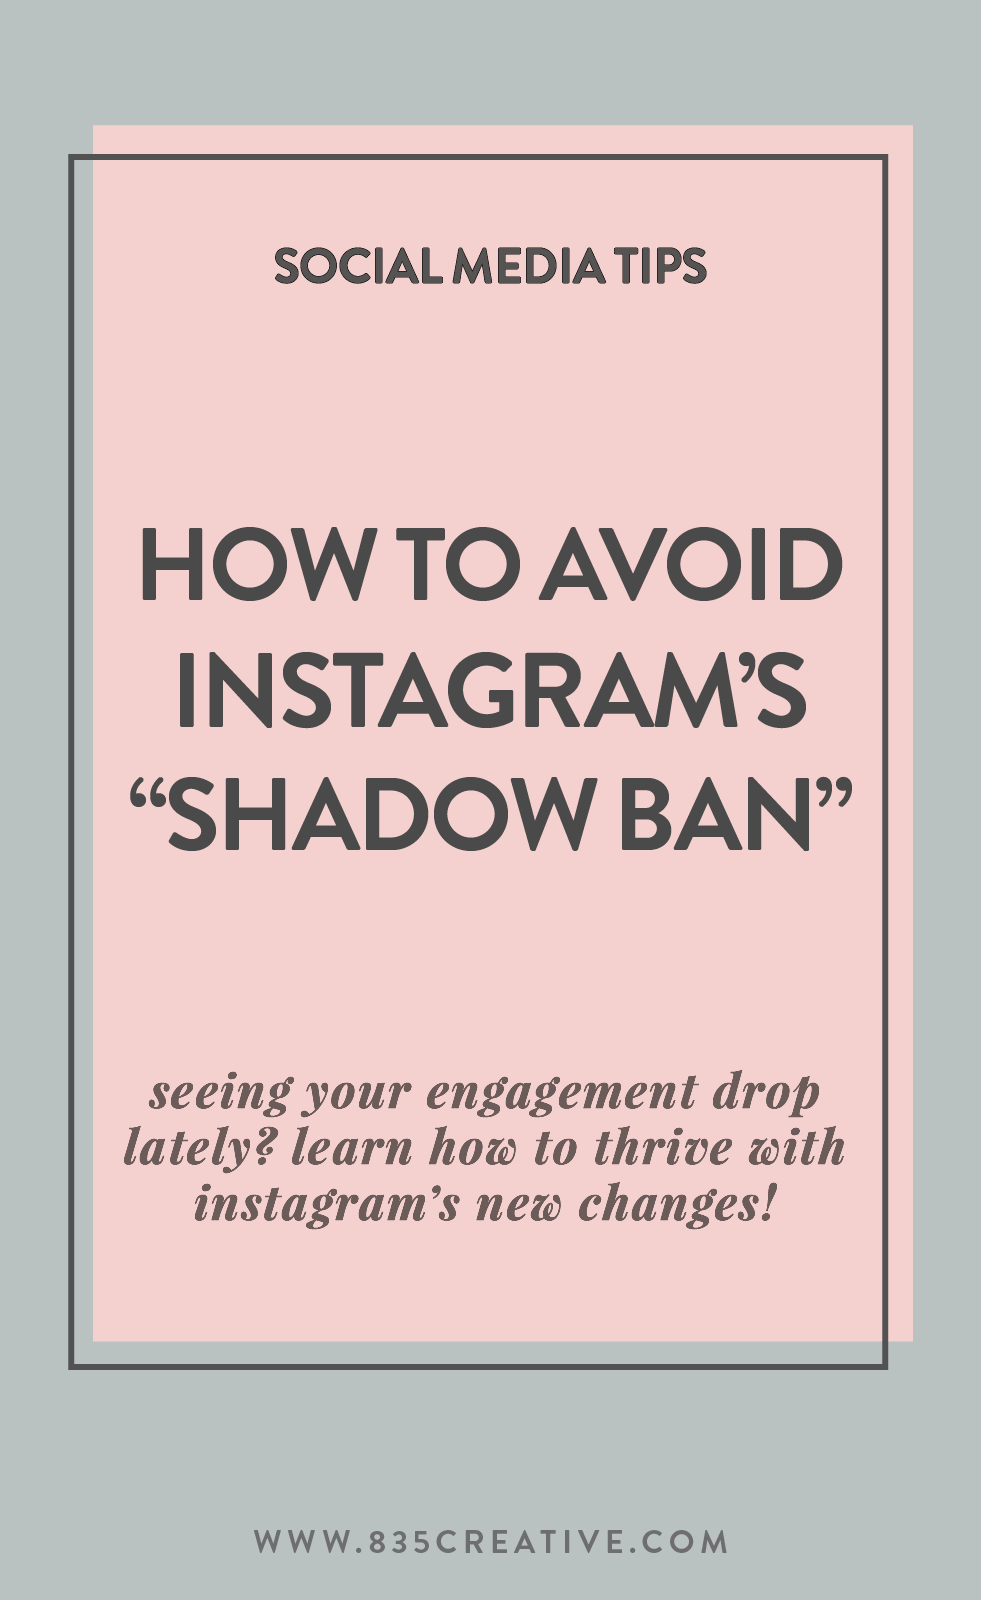 How to avoid Instagram's Shadow Ban, shadowban, shadowbanning. Avoid the shadowban and grow your Instagram!